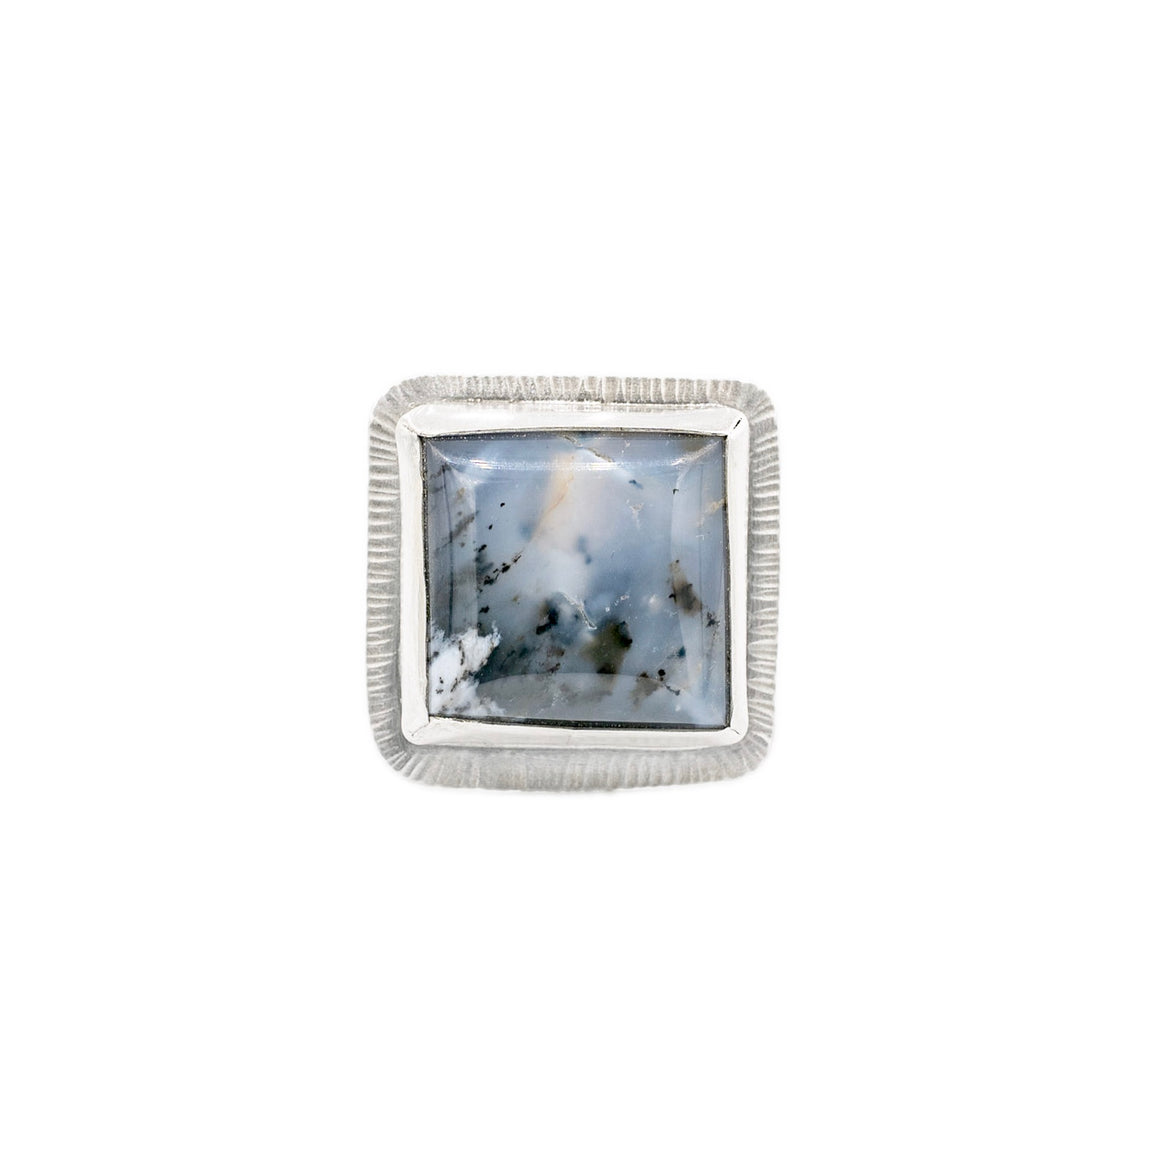 Dendritic Agate Fine Silver woven Adjustable Ring by Margaret at Original Sin Jewelry